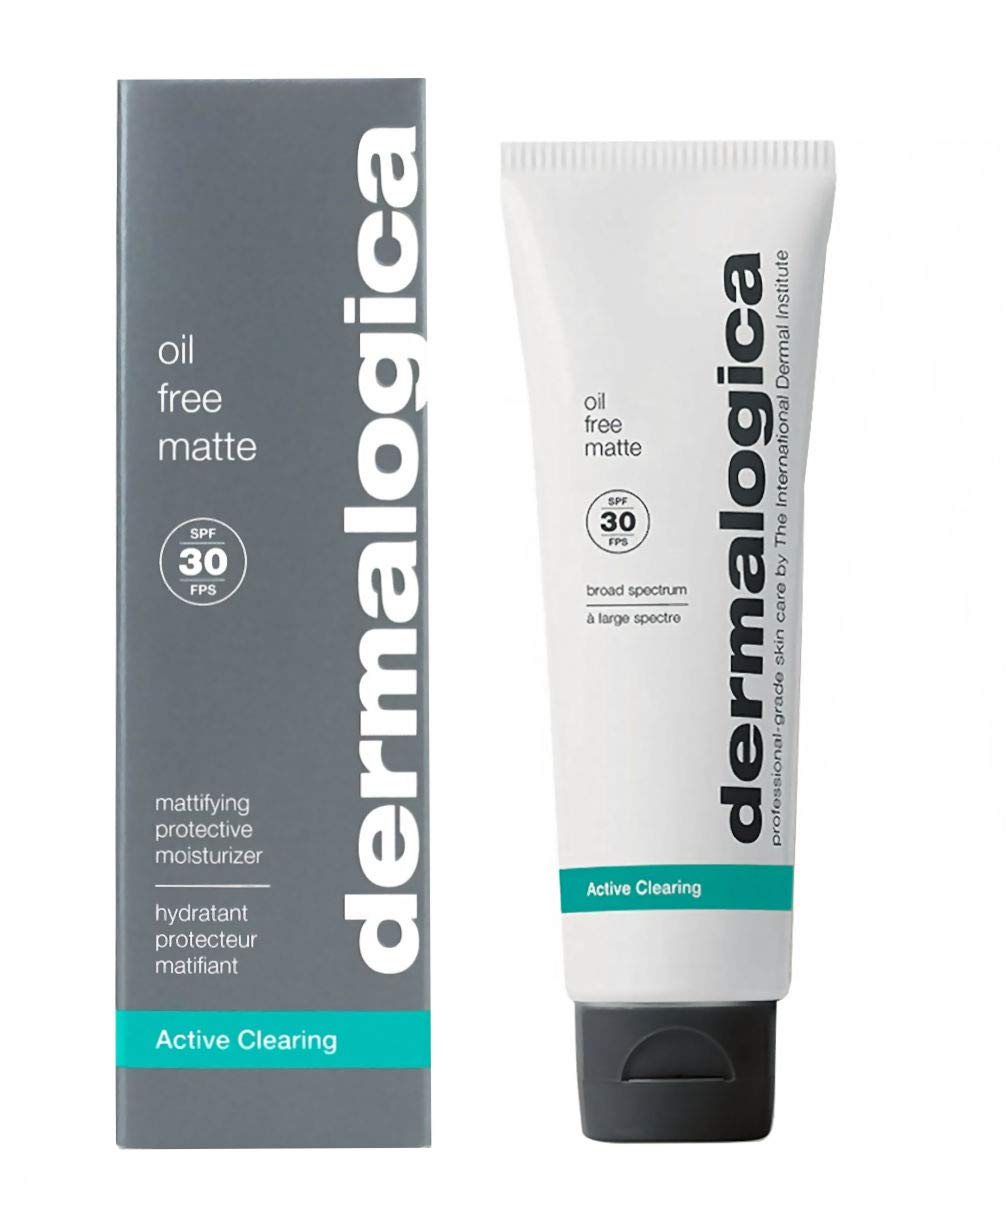 Top 10 Best SPF Moisturizer for Men (2020 Reviews & Buying Guide) 2